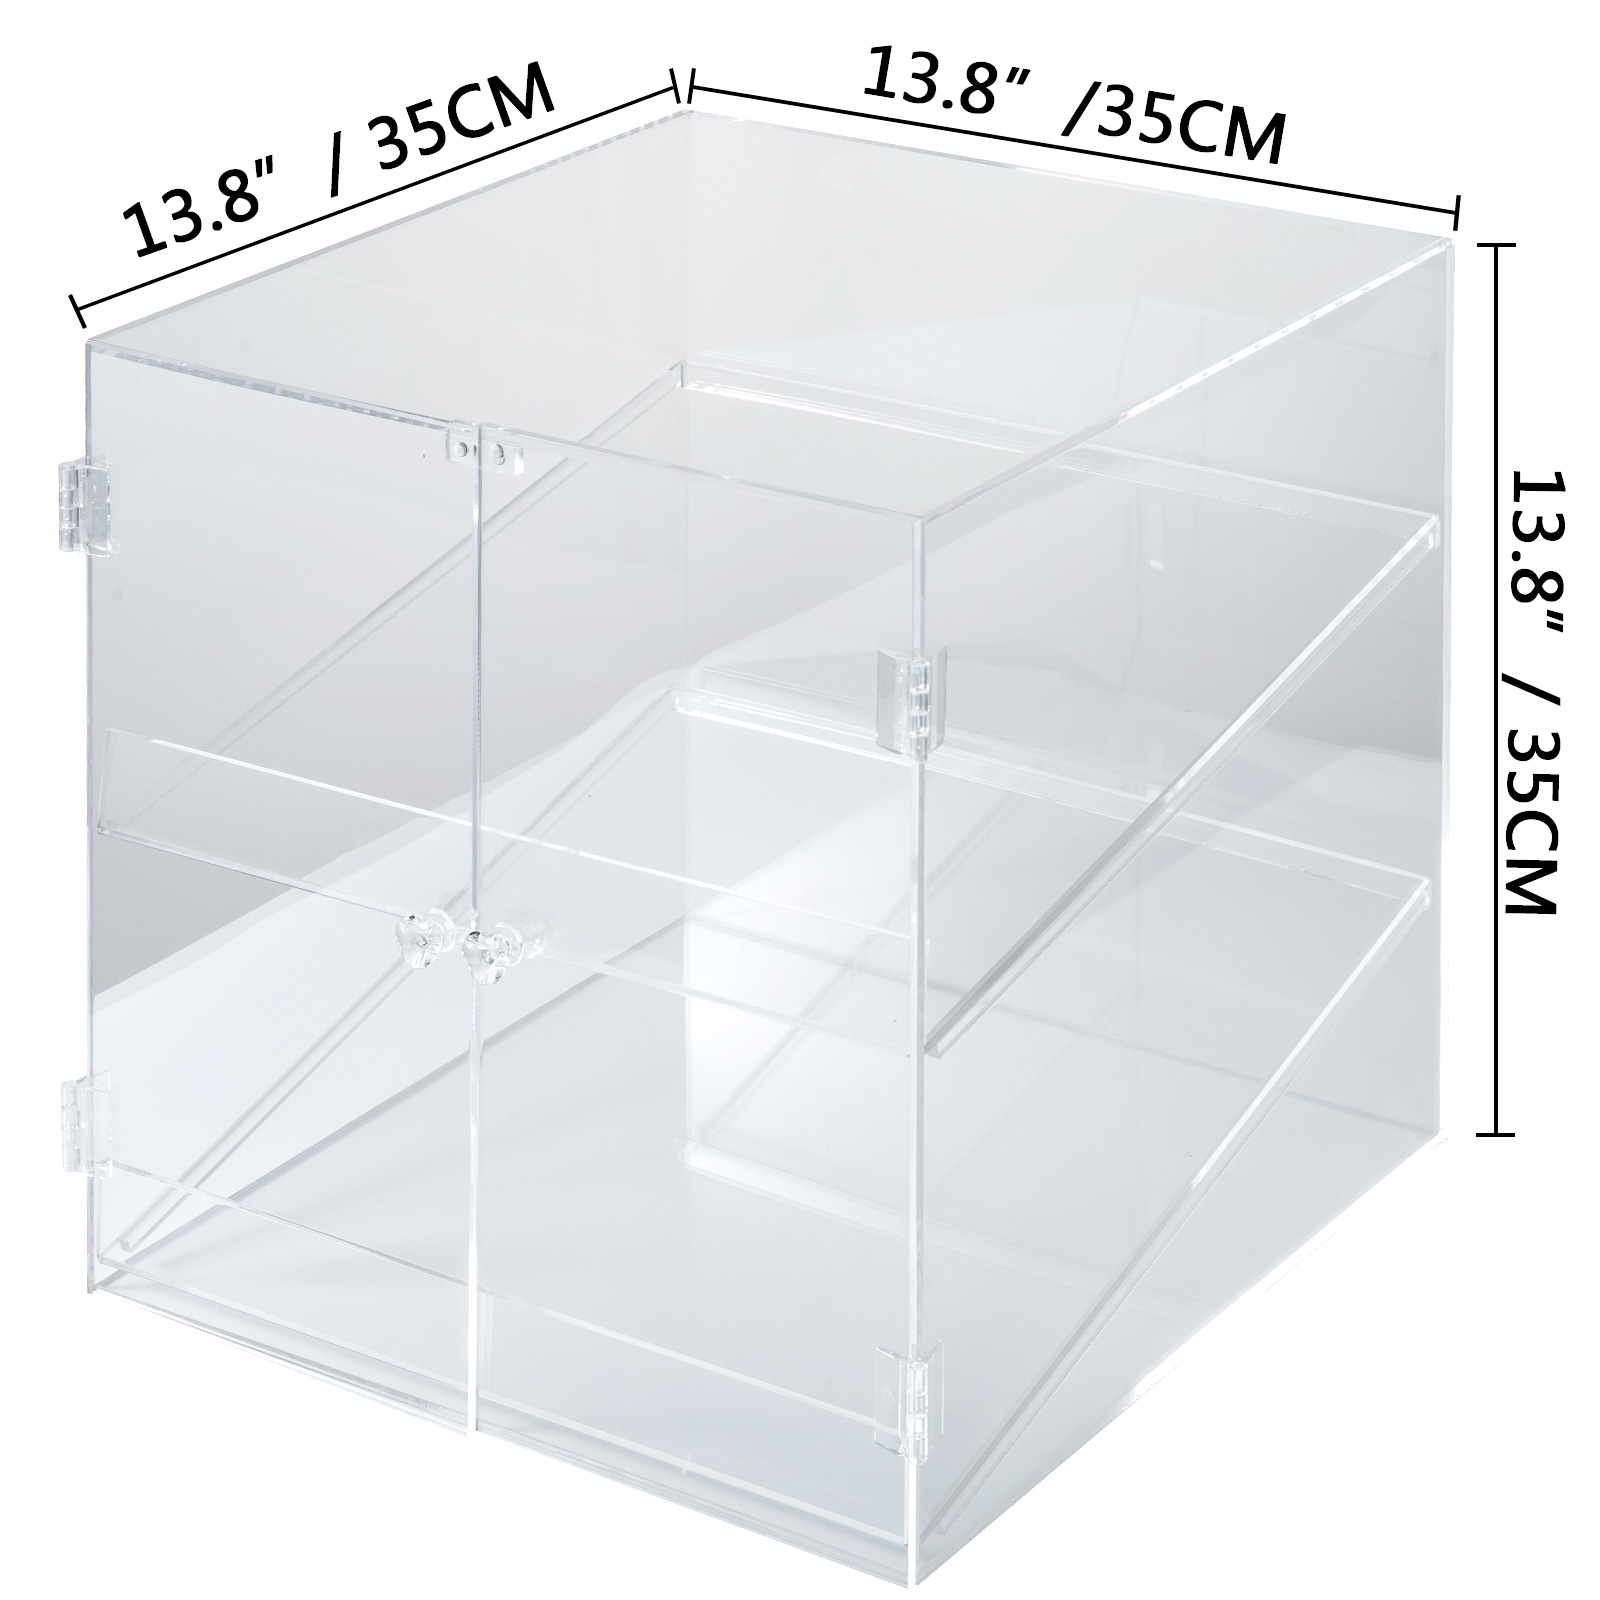 thumbnail 152 - 2-3-4-Shelves-Acrylic-Display-Cabinet-Glued-Unassembled-Bakery-Clear-Pastry